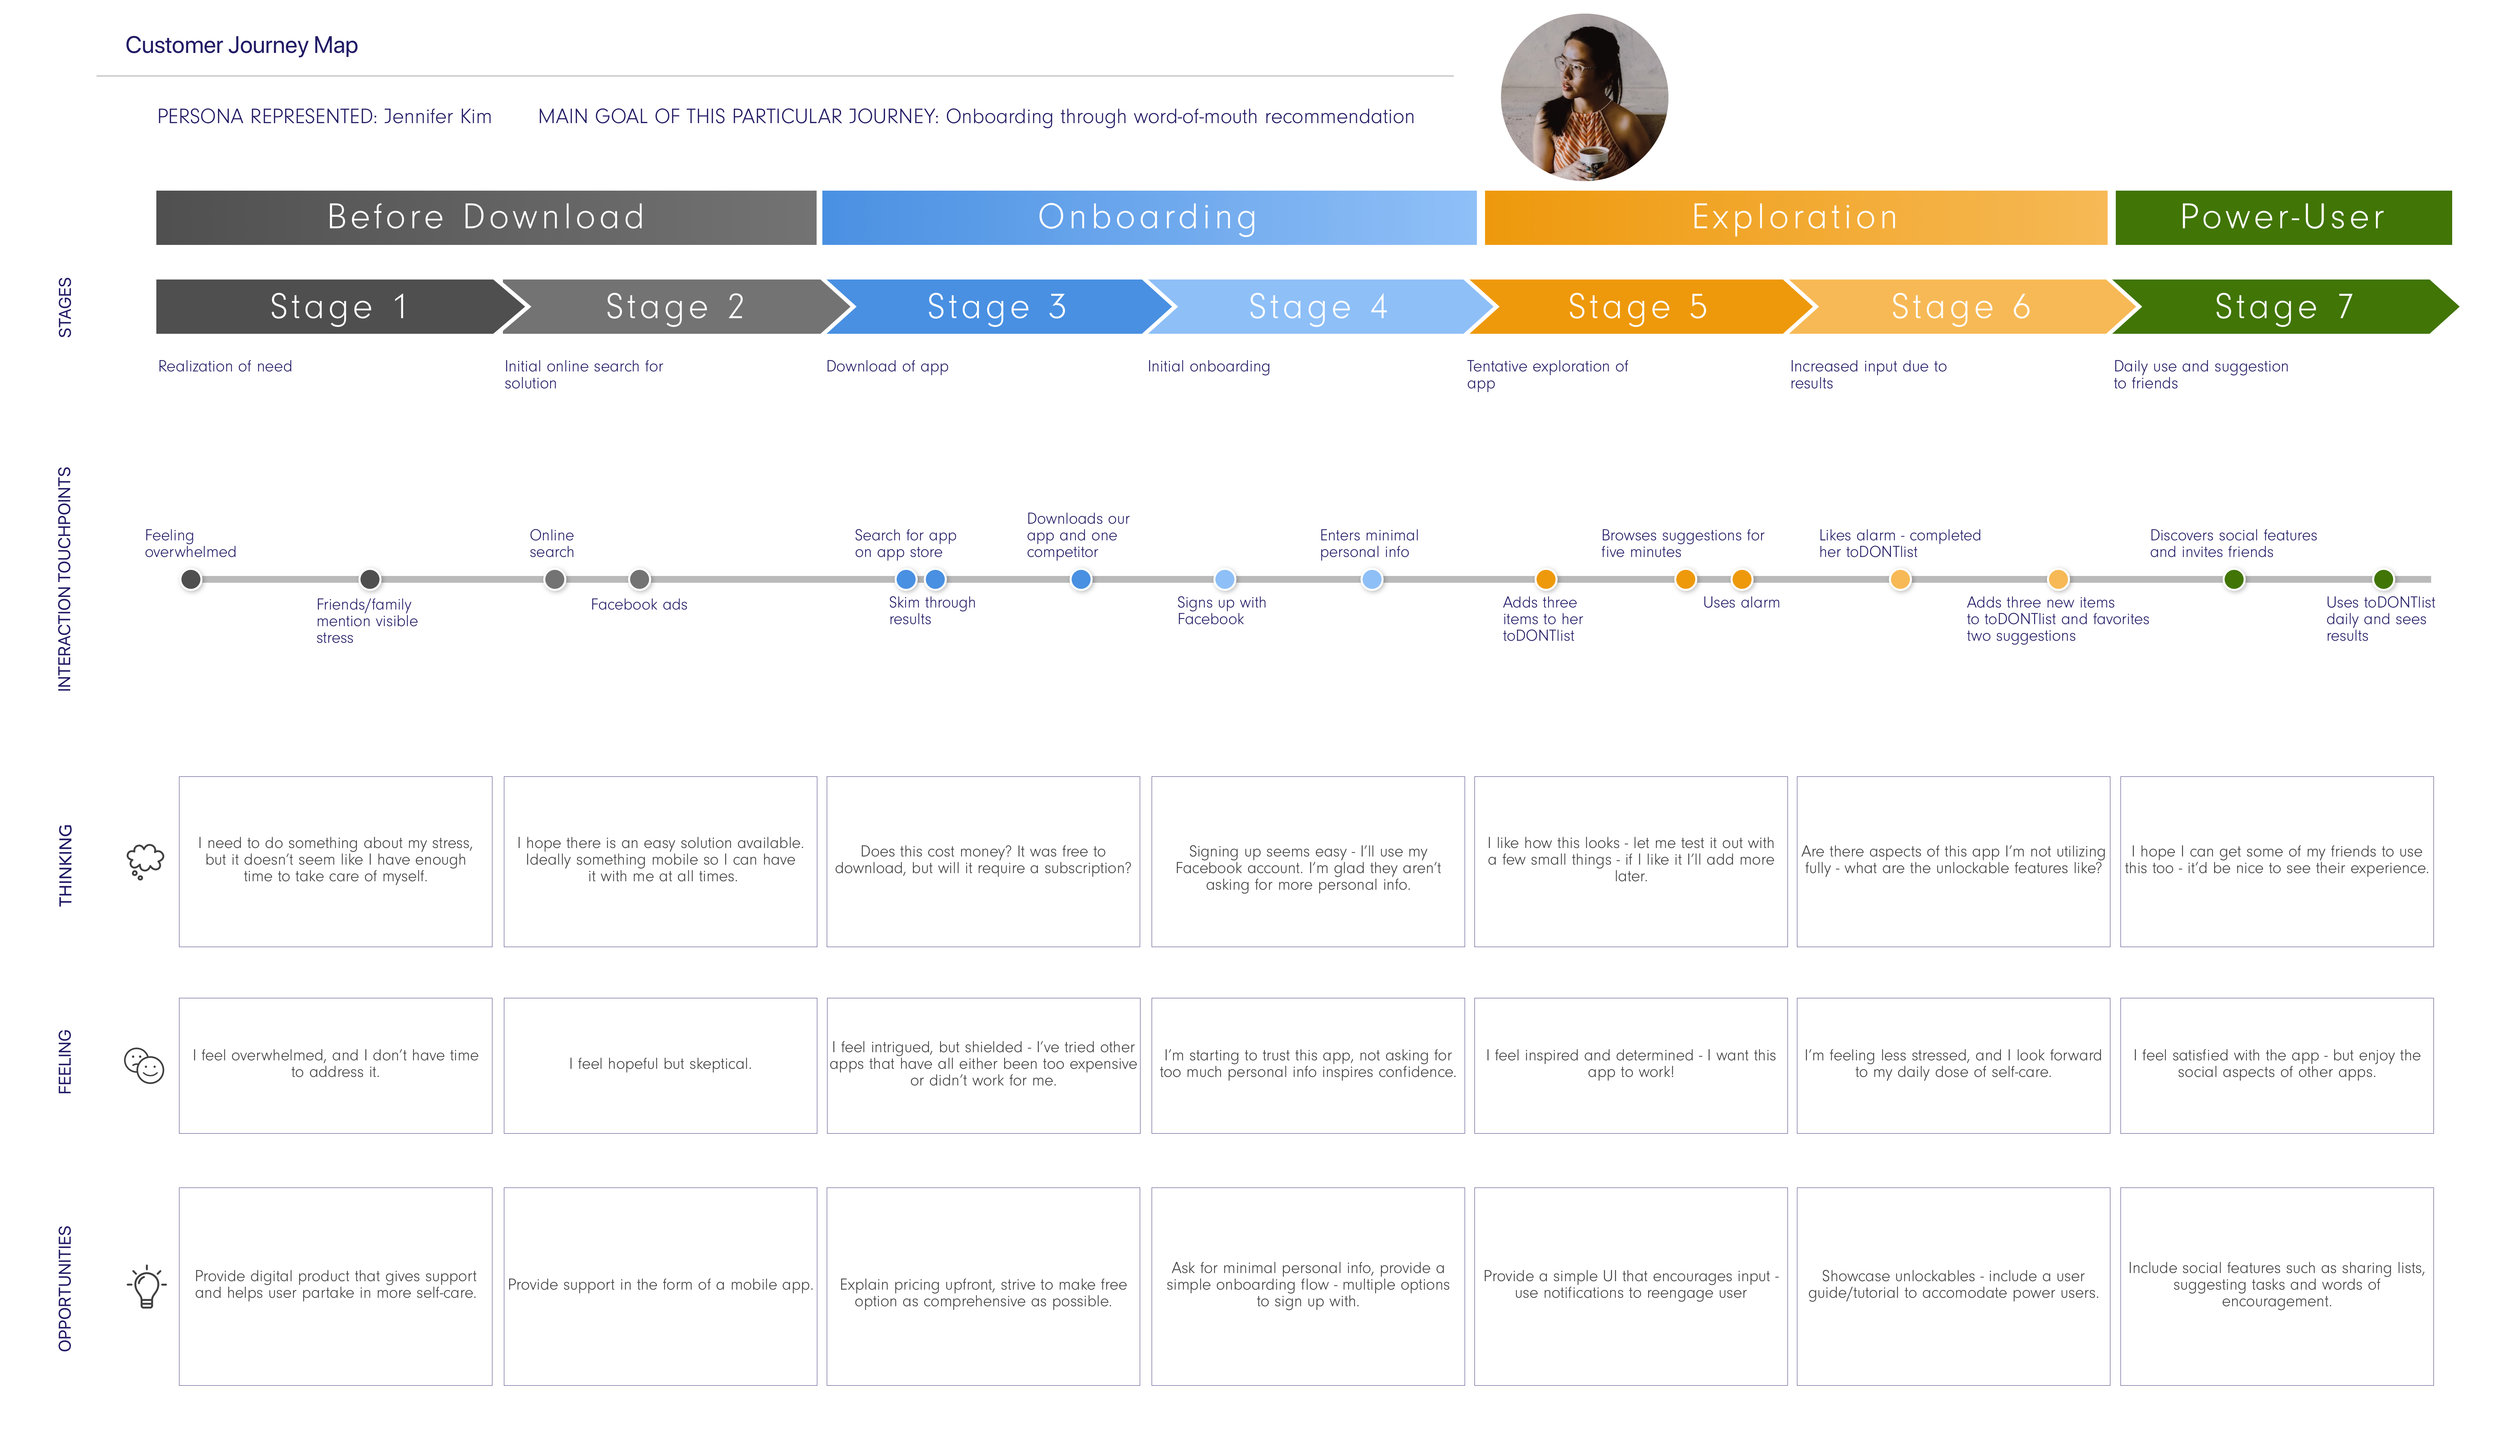 Creating Jennifer Kim's customer journey map helped  clarify potential drop-off points,  and inspired the idea of  morning + night = daily user.